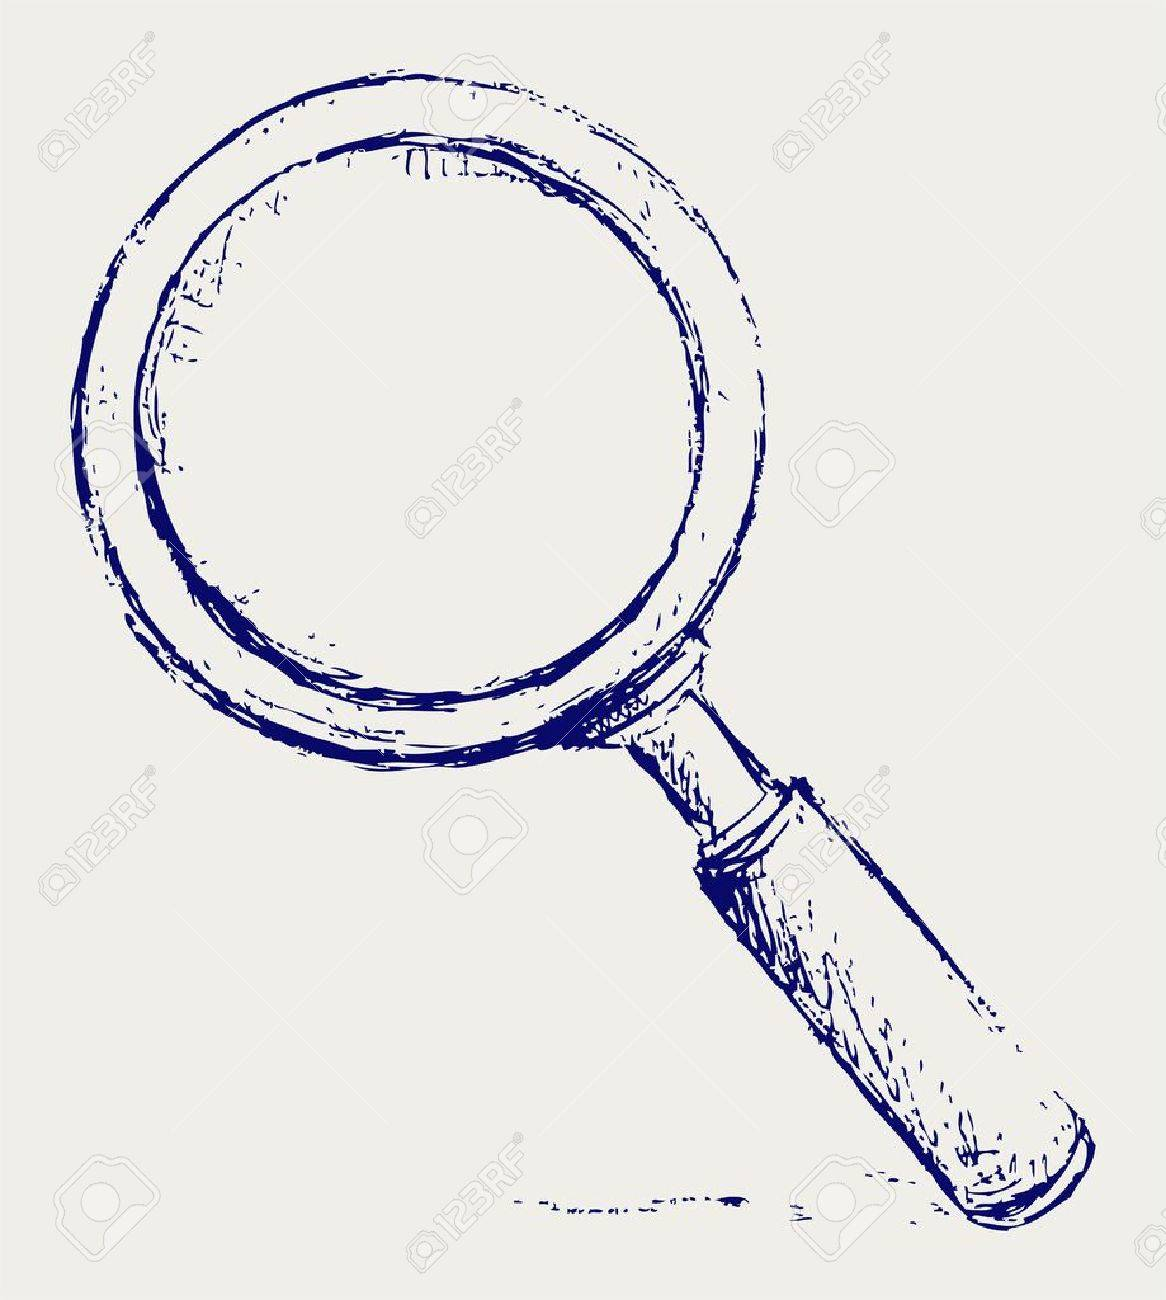 Magnifying glass - 15795486